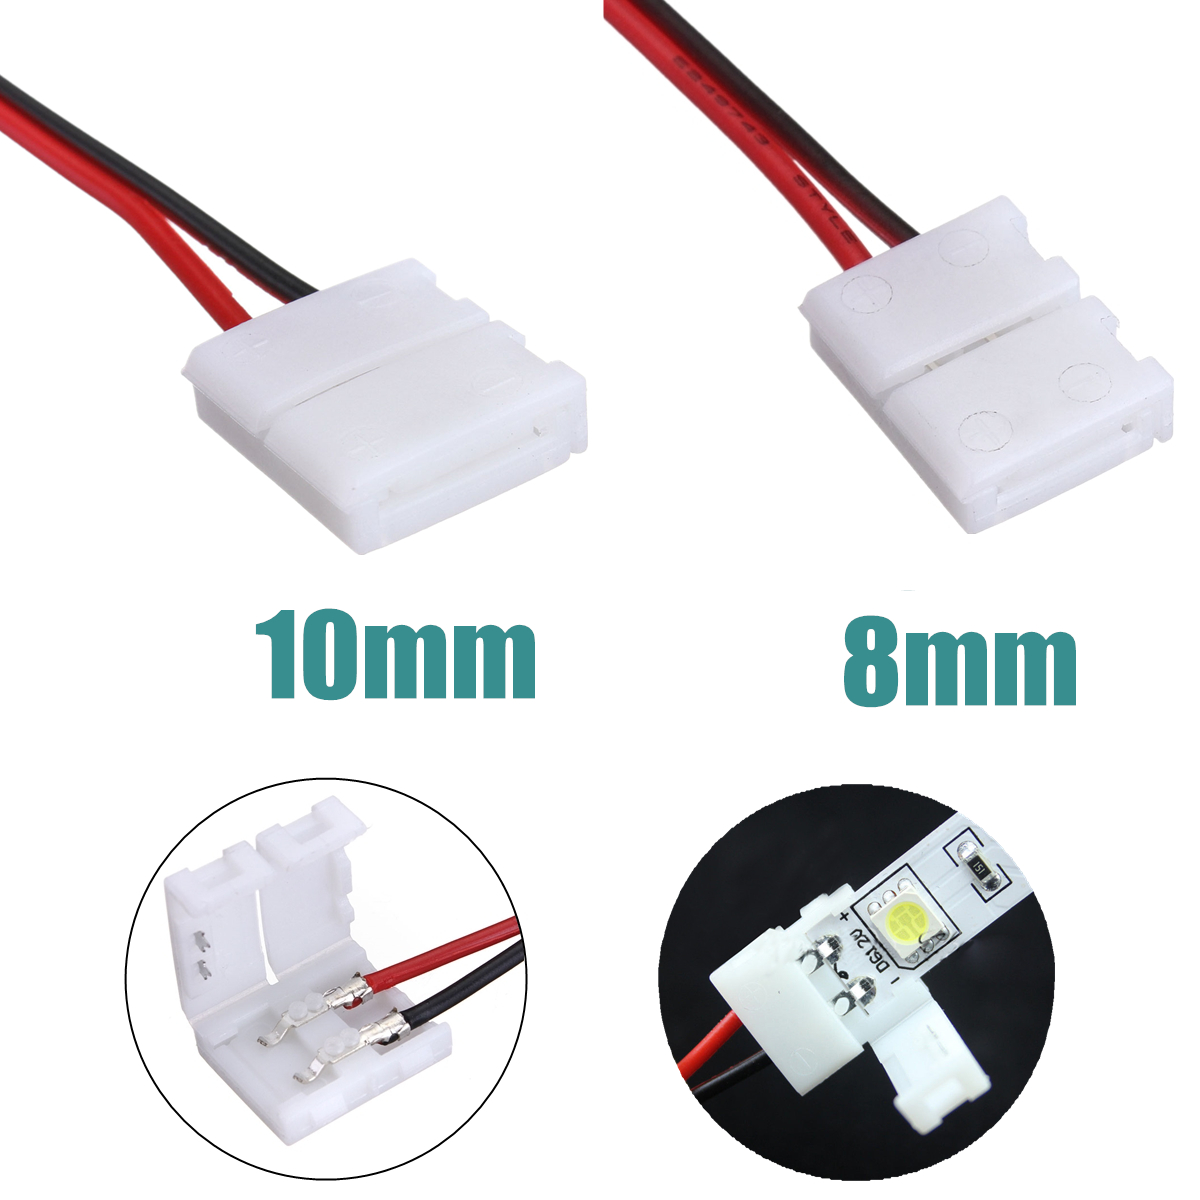 2-Pins Power Connector Adaptor For 3528/5050 Led Strip Wire With PCB free shipping super wide u shape aluminum anodized profile for led strips with cover and end caps for dual row led strip